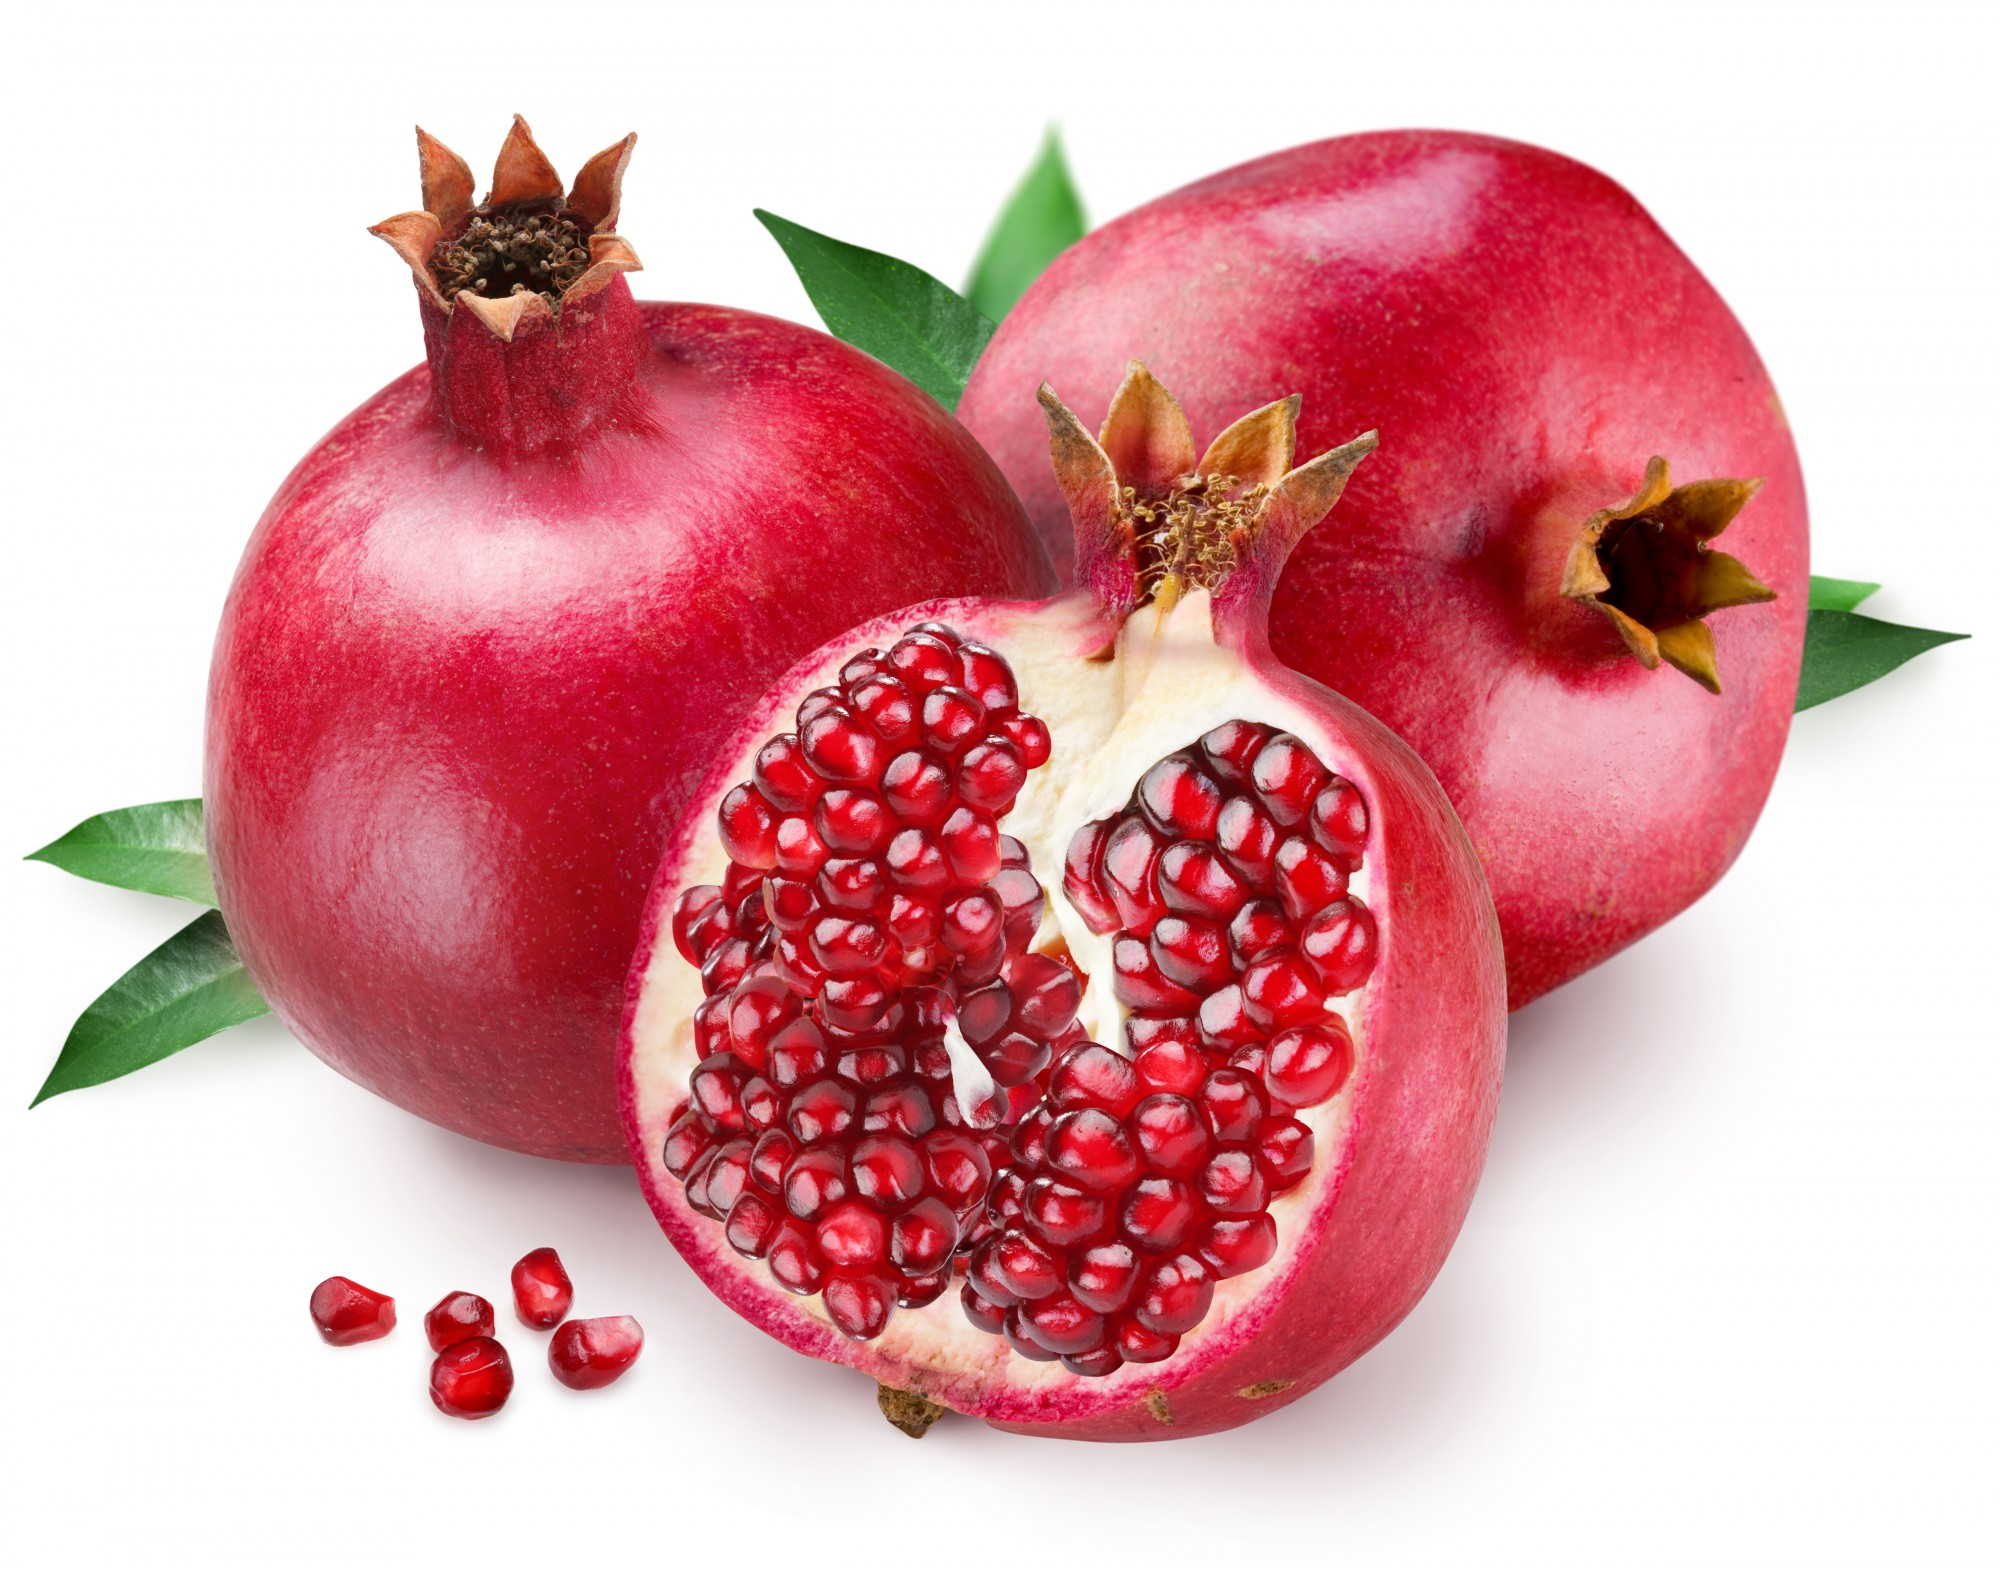 Pomegranate Fruits Wallpaper 314.55 Kb